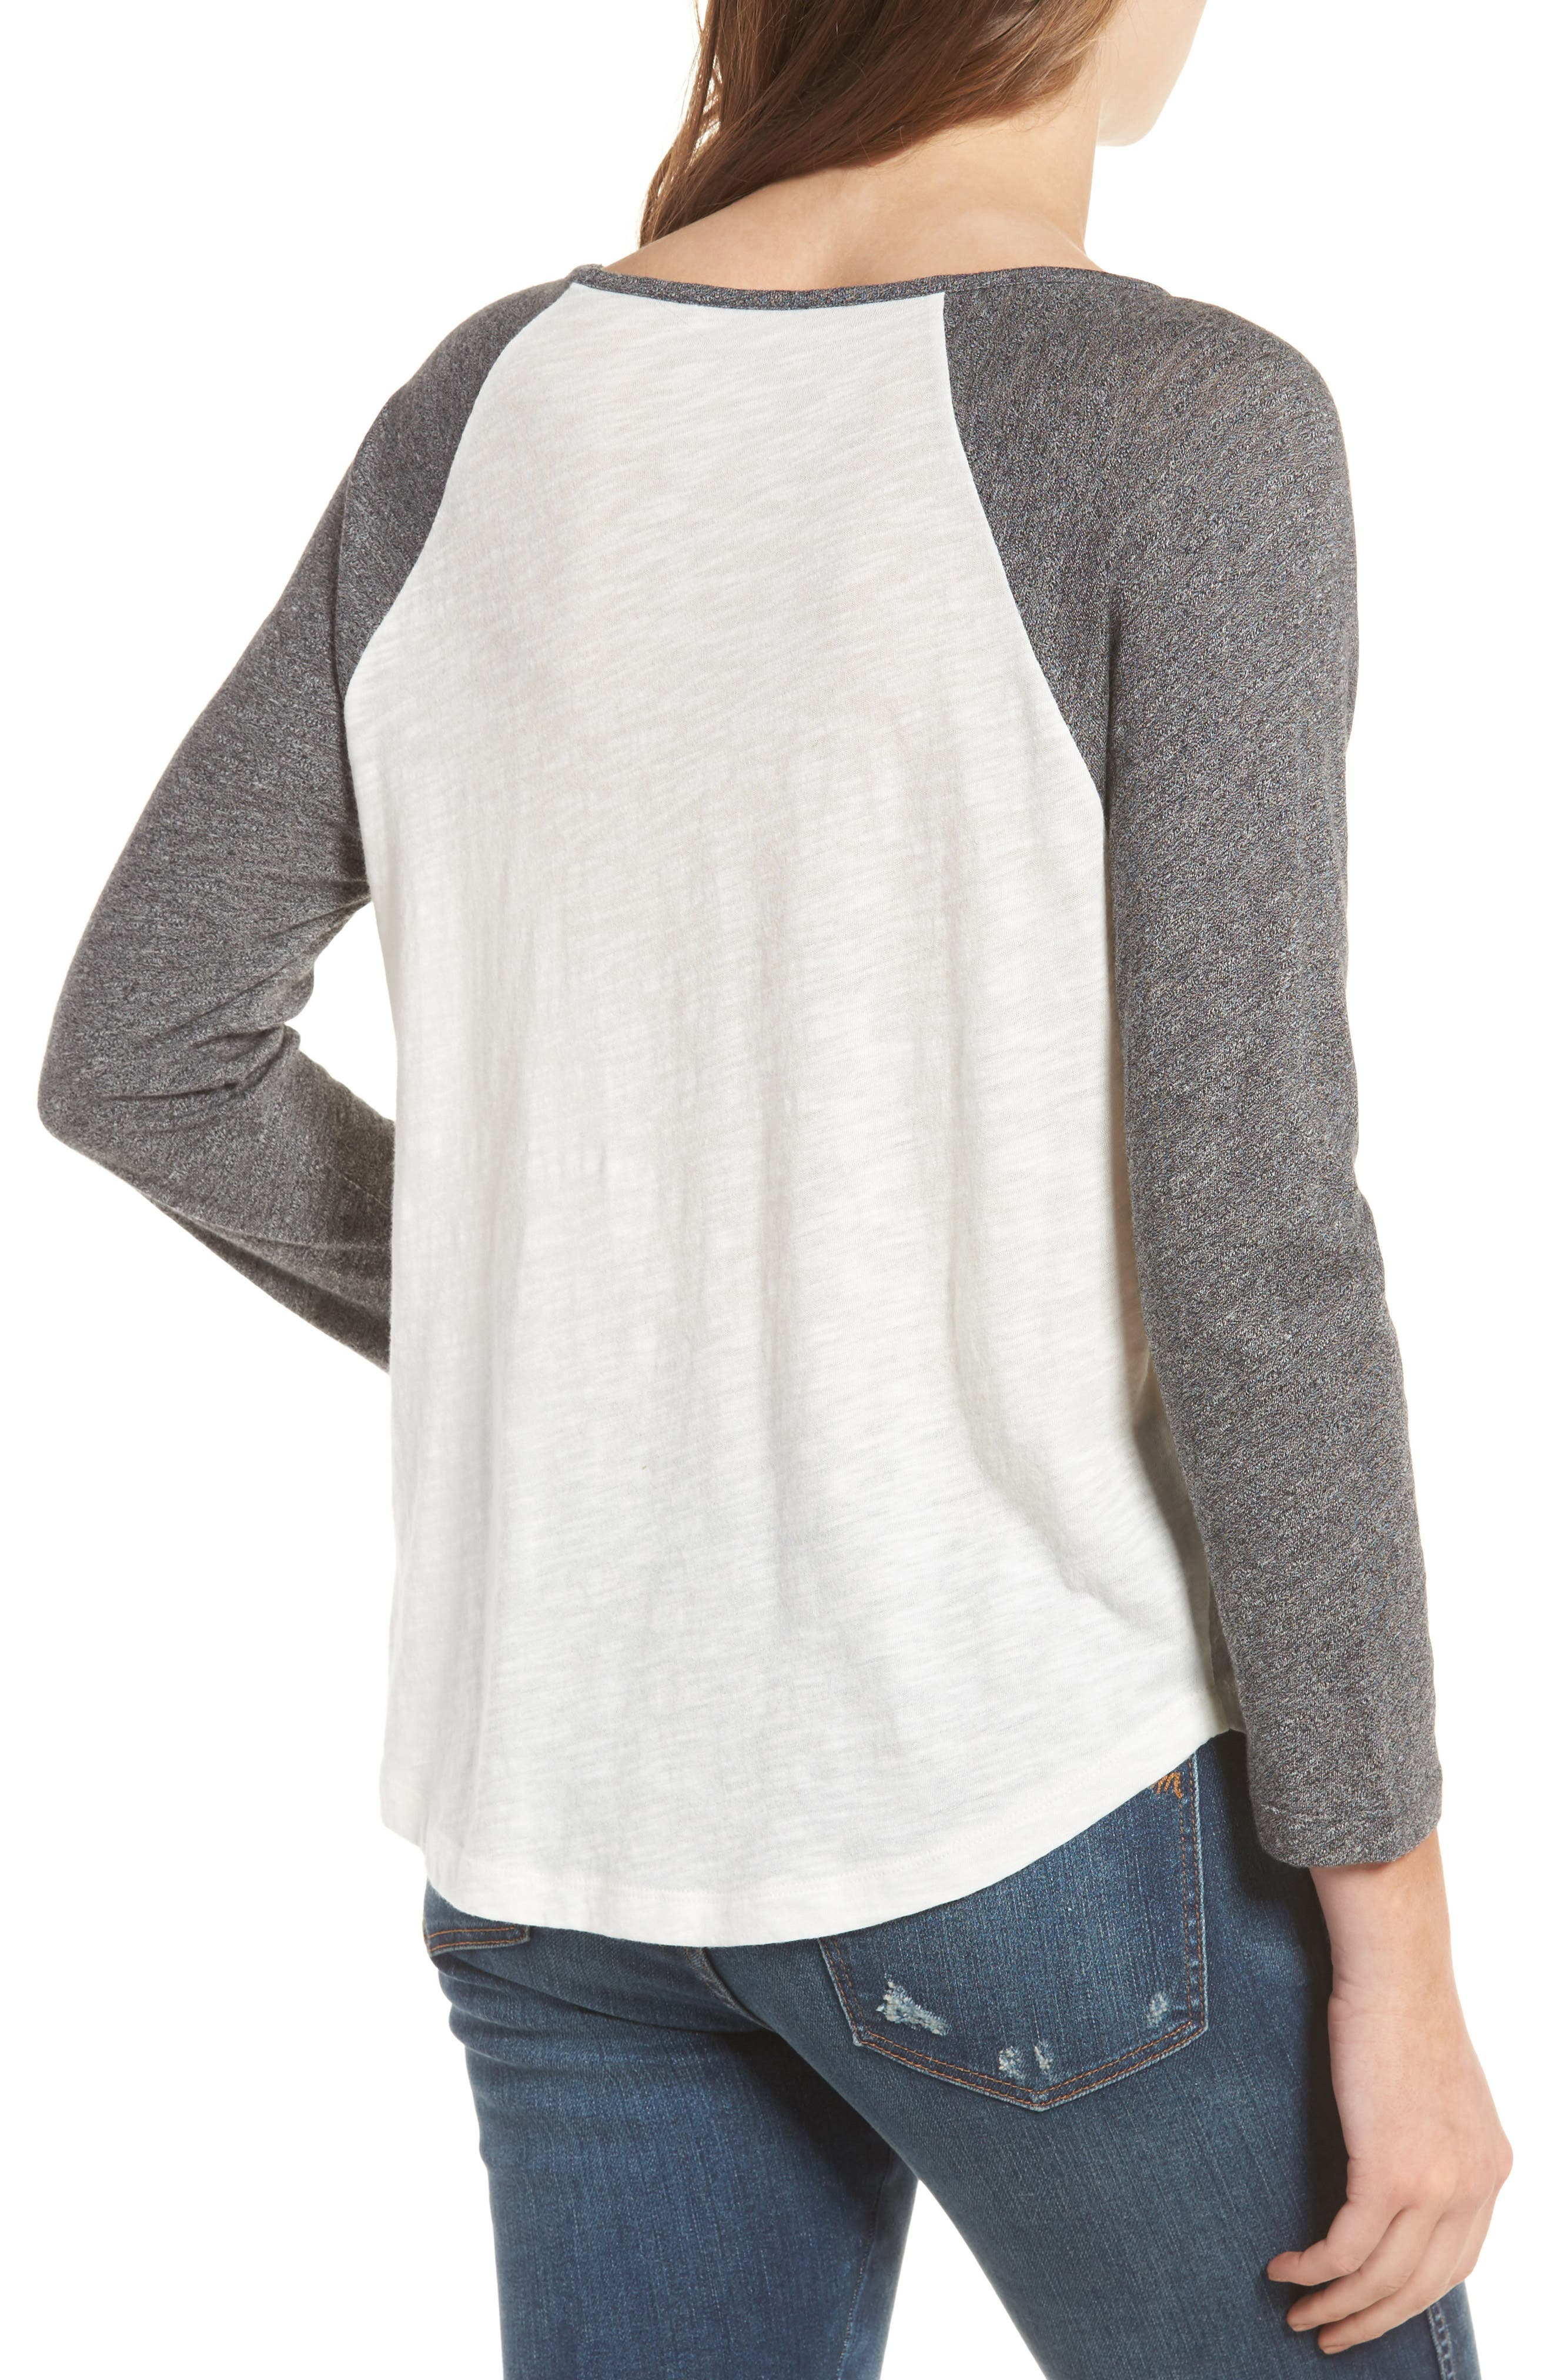 MADEWELL,                             Baseball Tee,                             Alternate thumbnail 2, color,                             021